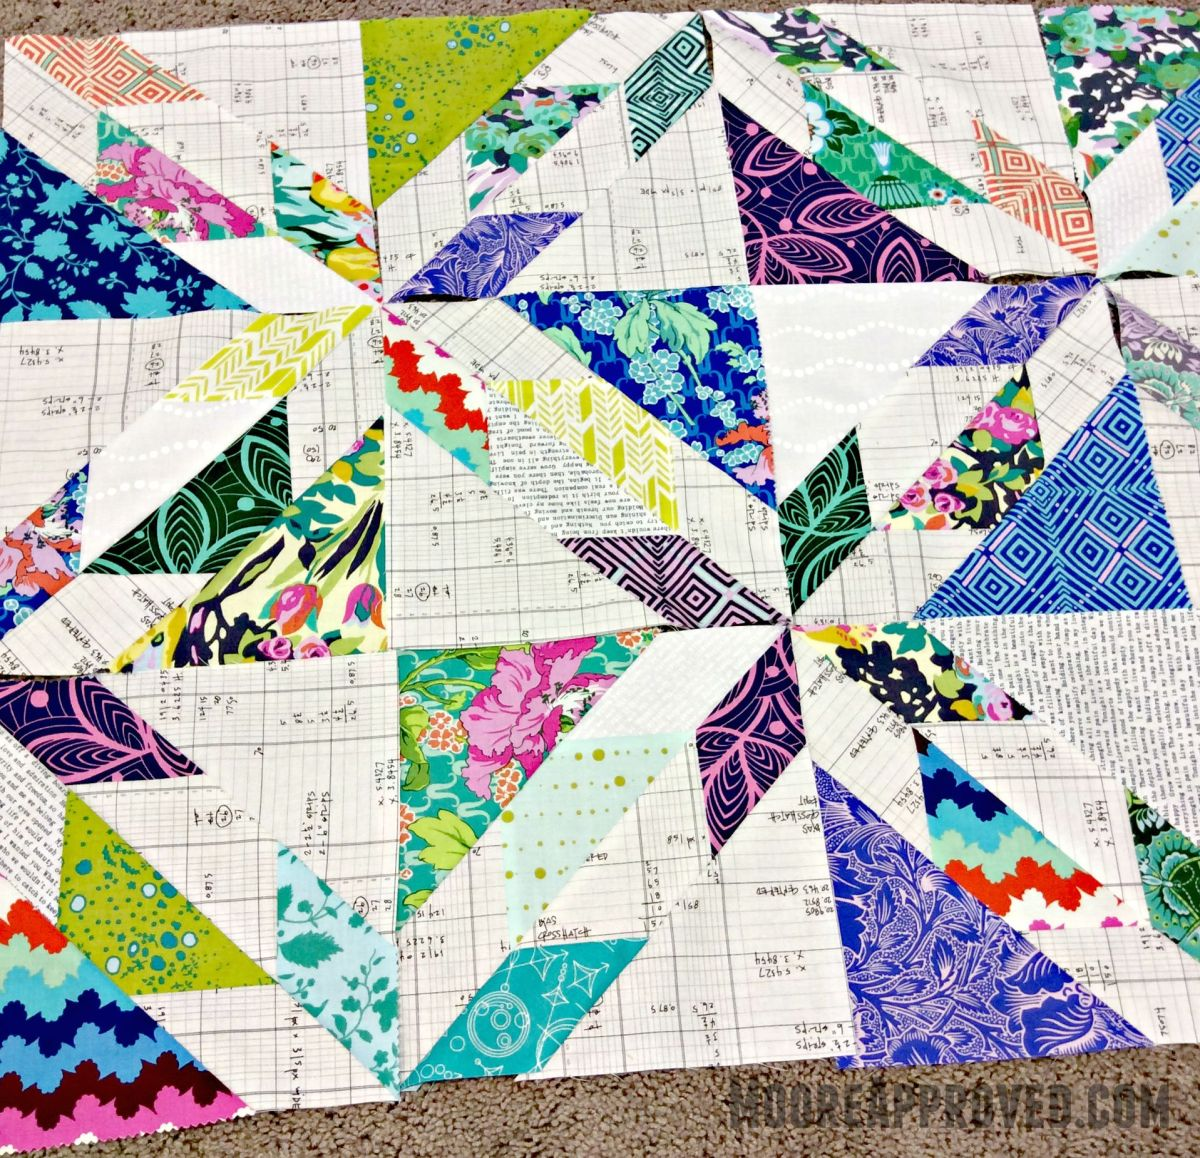 New Quilt Patterns For 2015 : New Quilt in Progress: Scrappy Hunter s Star MOORE APPROVED